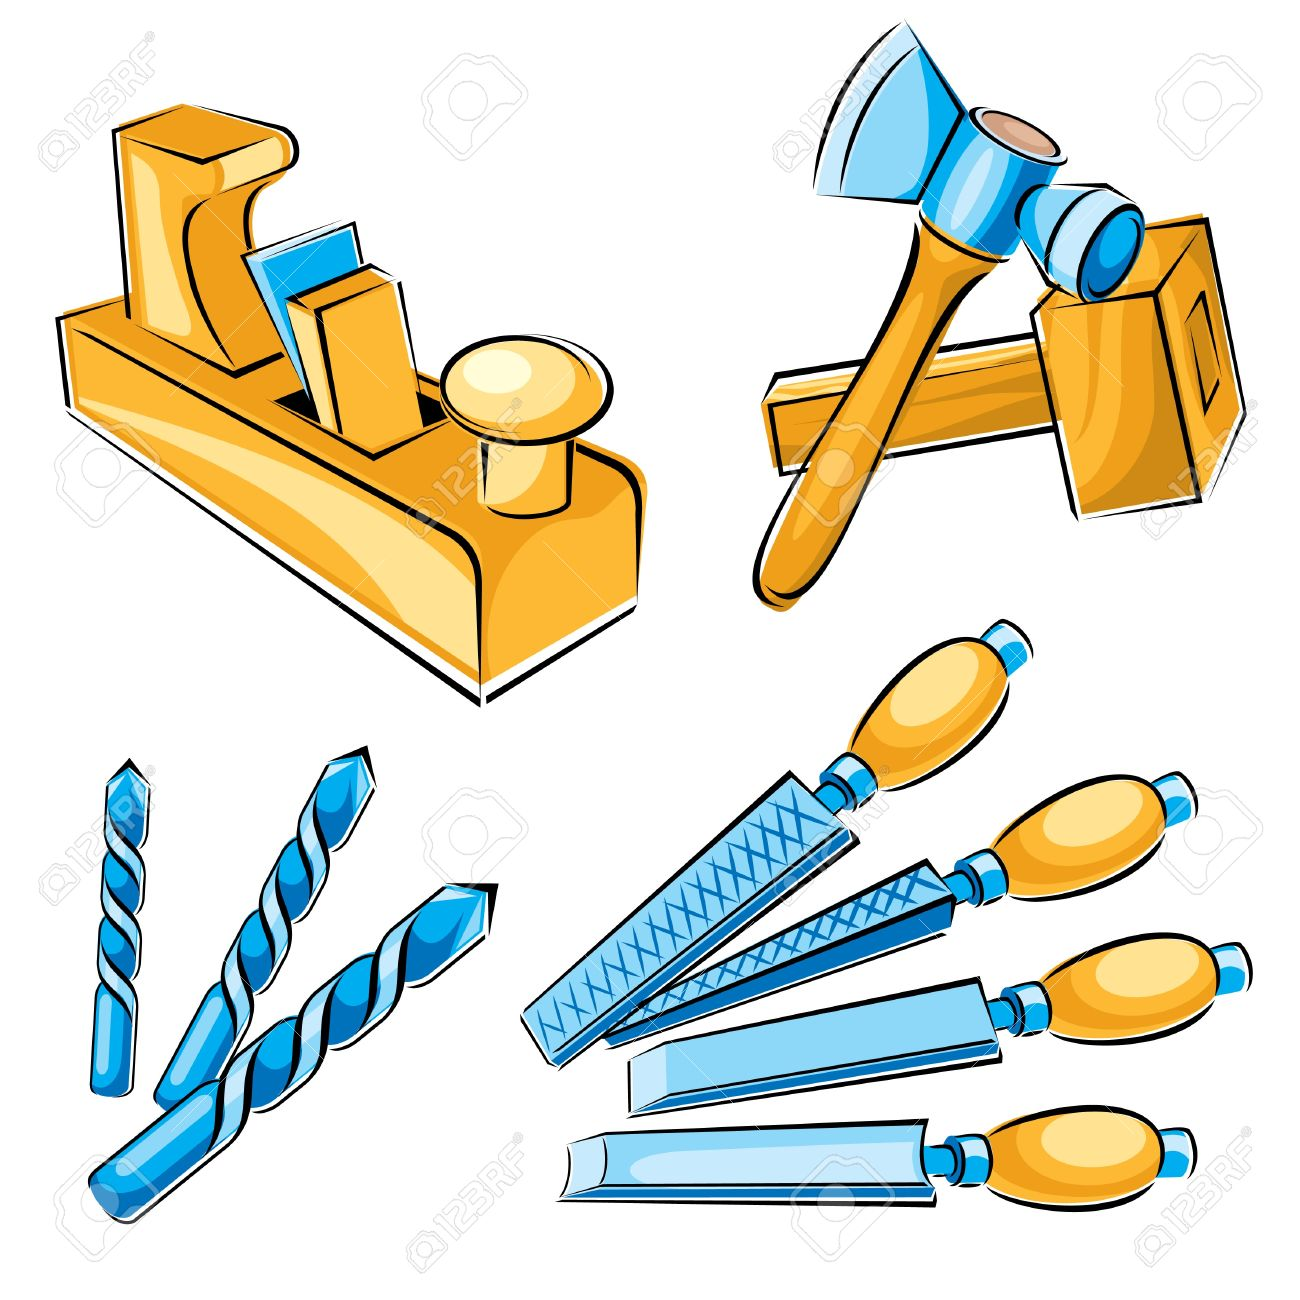 set vector images of hand tools for a joiner Stock Vector - 9224234